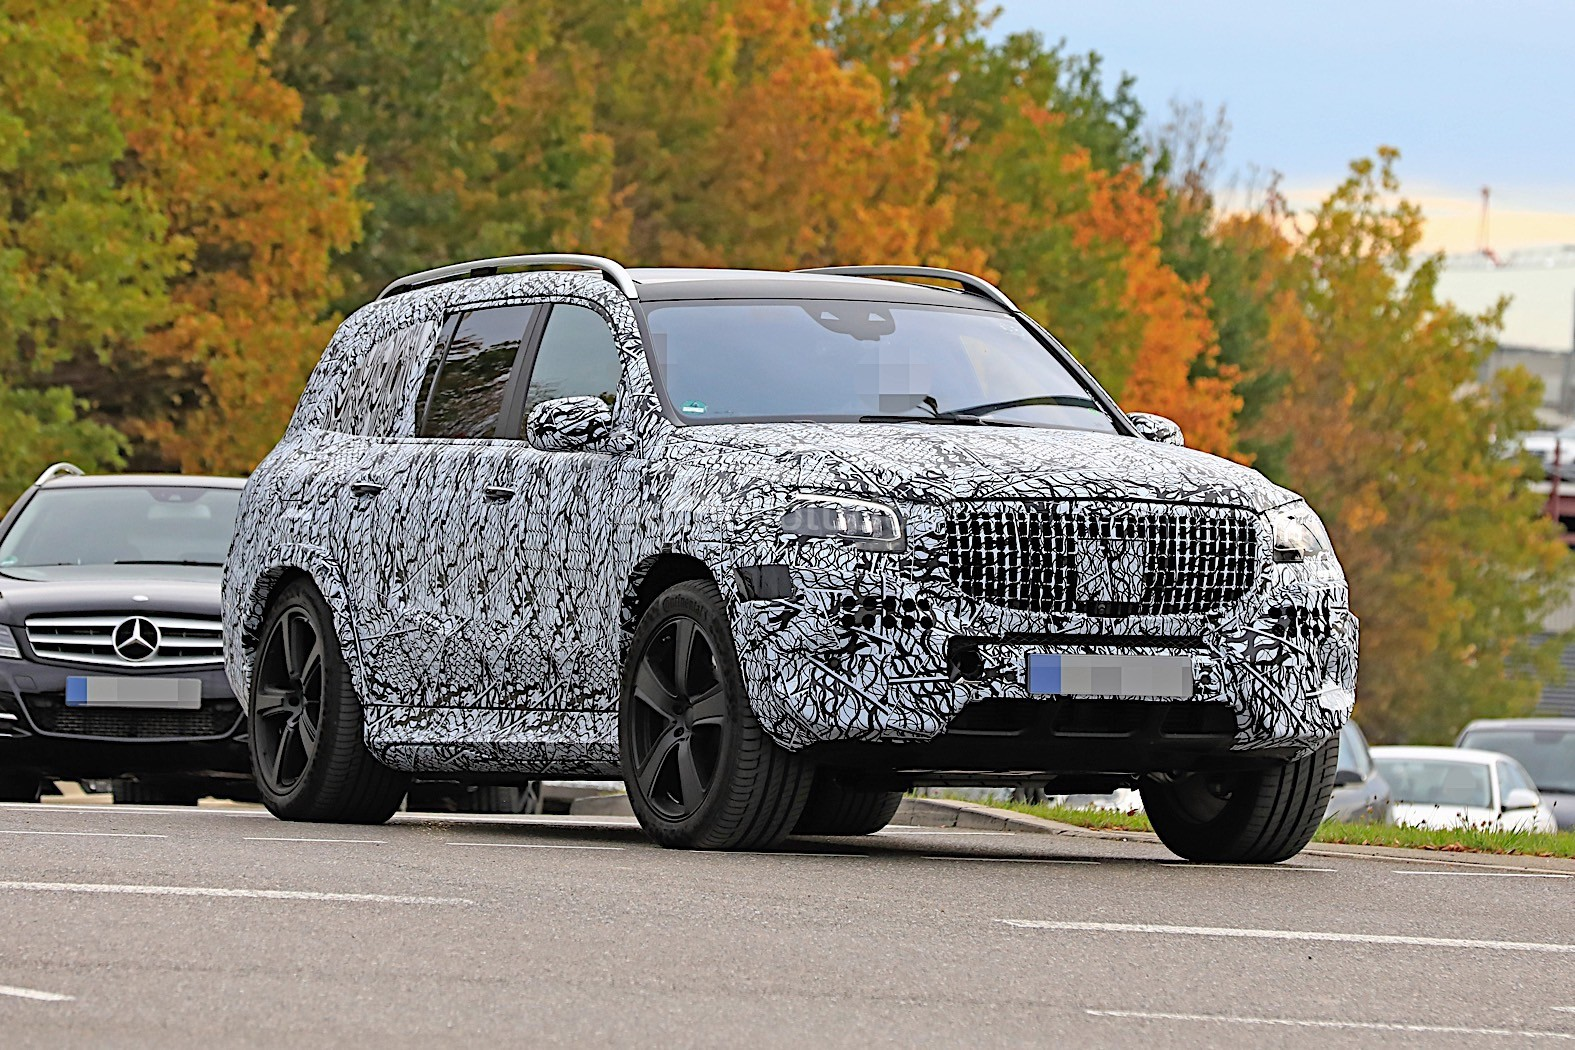 2020 Mercedes Maybach Gls Meets Mercedes Benz Gls In Rare